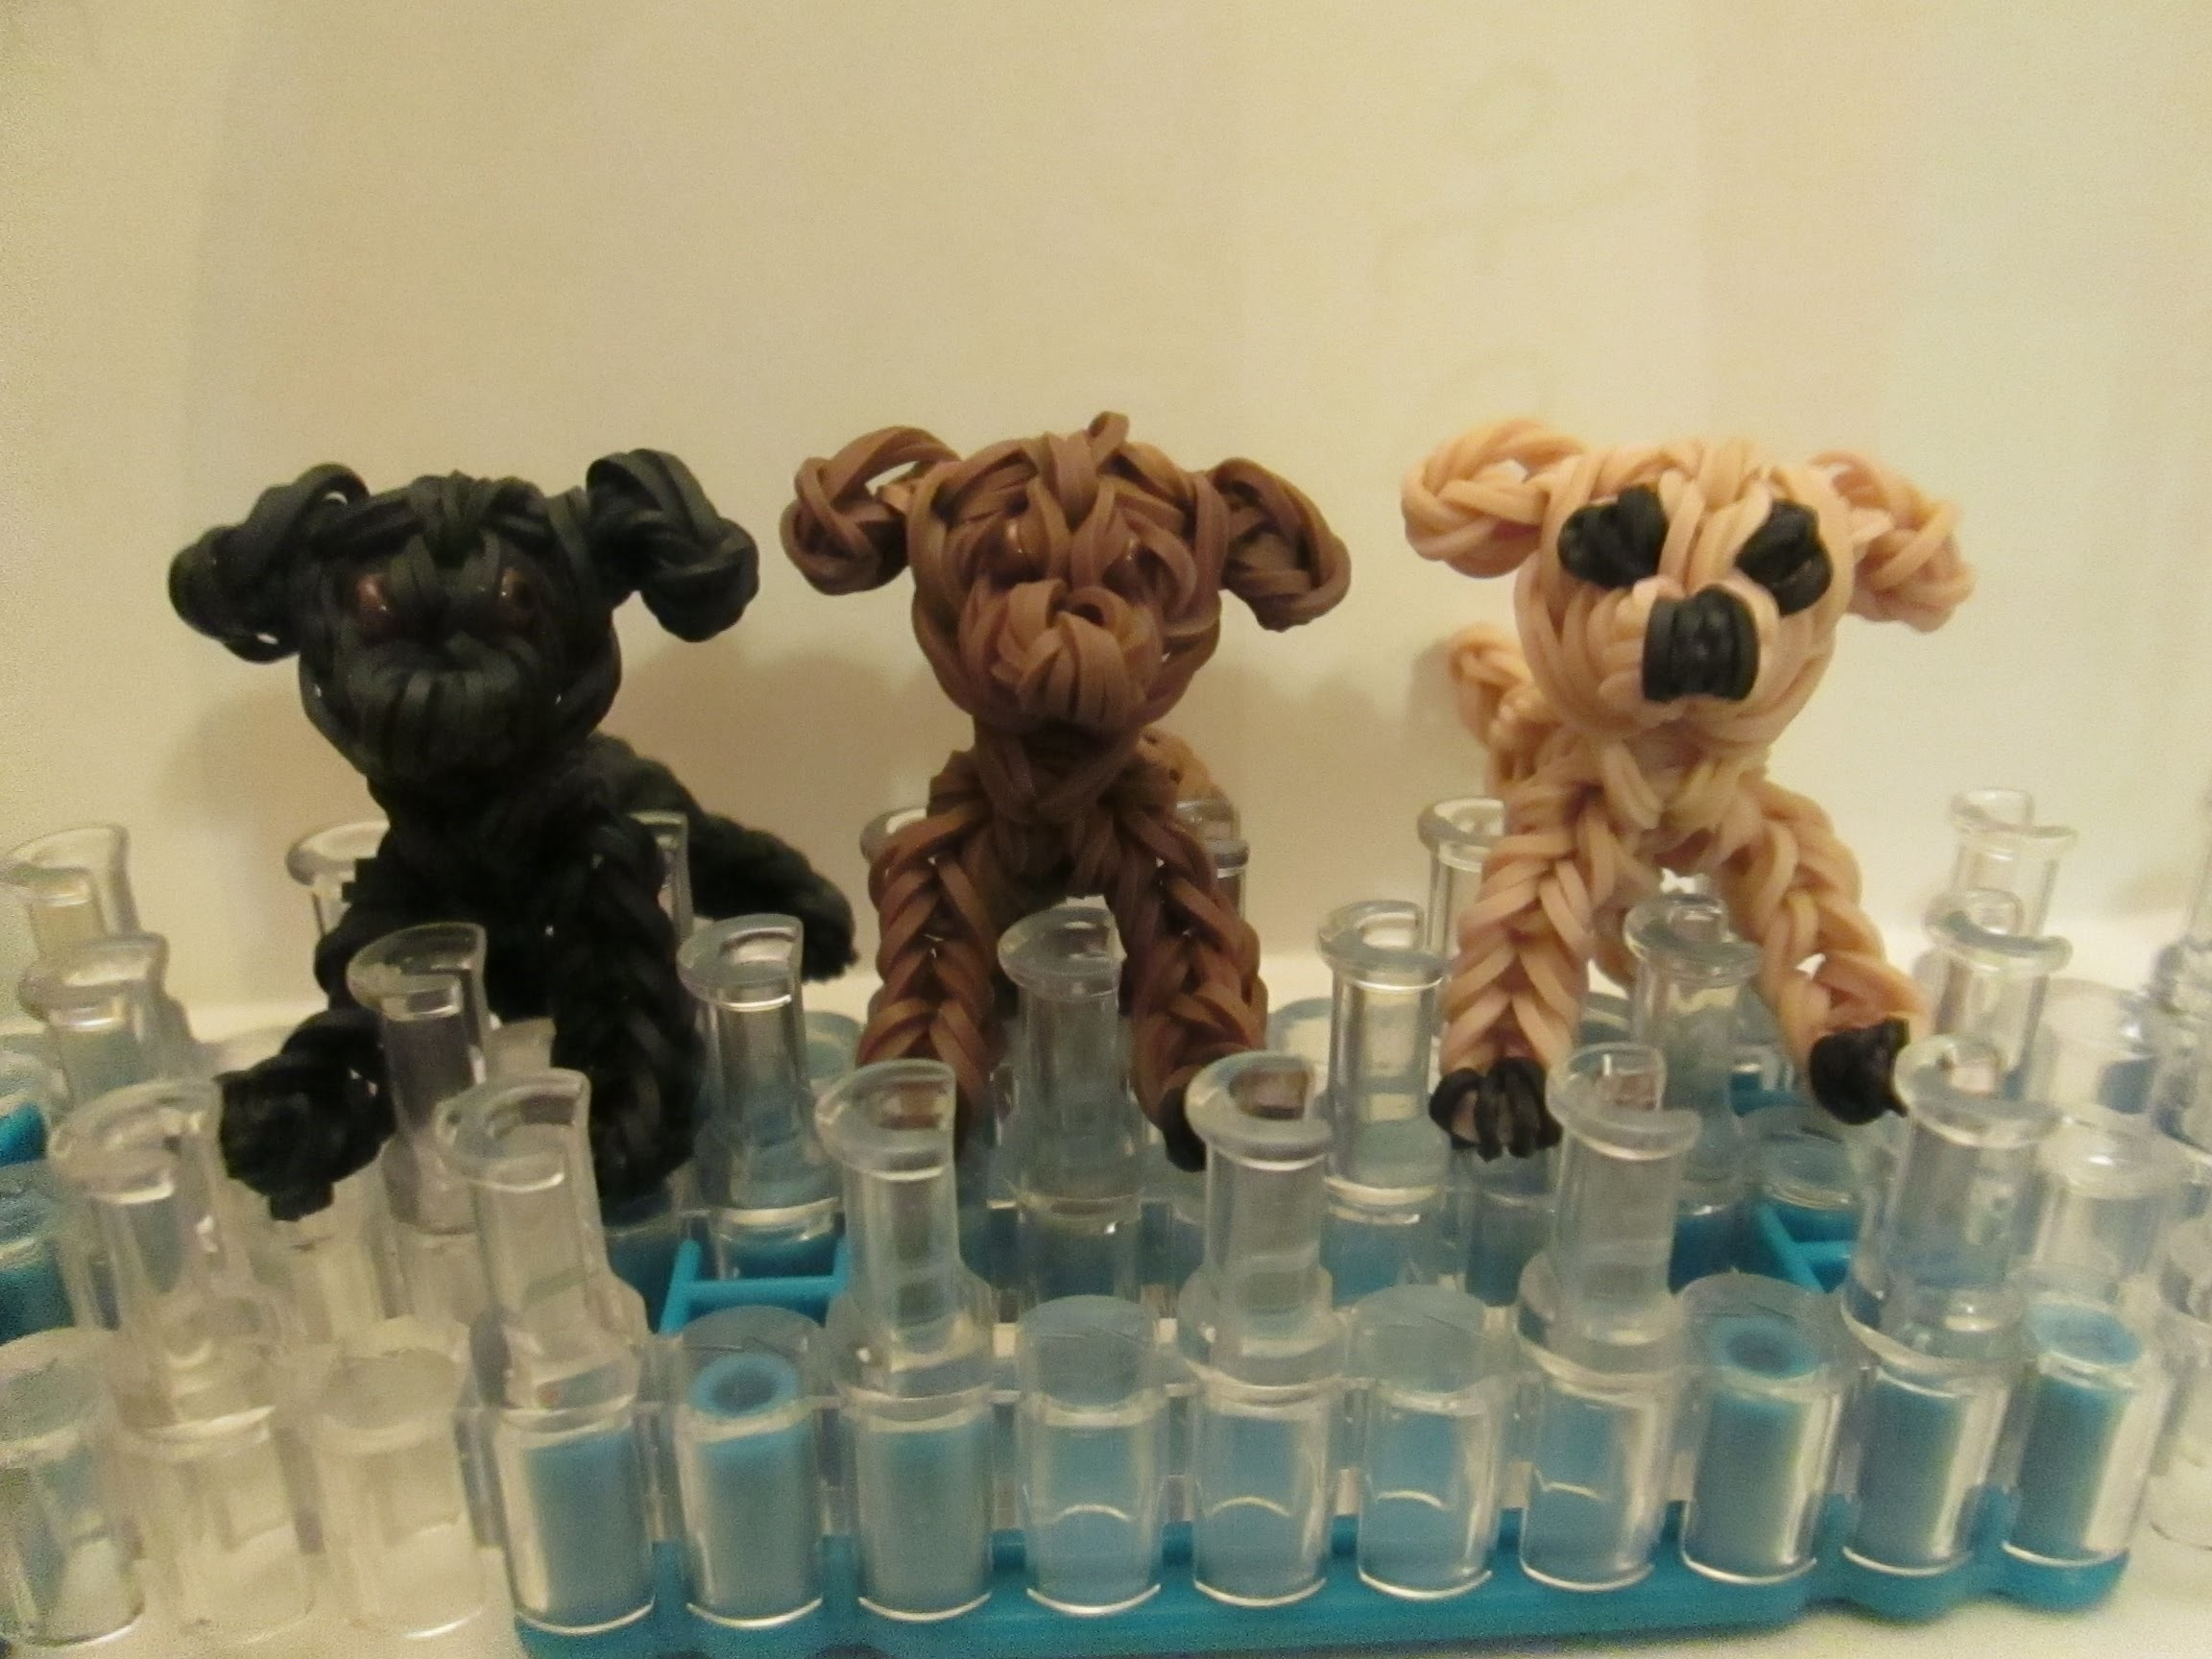 Rainbow Loom Labrador Retriever Dog or Puppy. Black, Chocolate, Yellow Lab. 3-D.